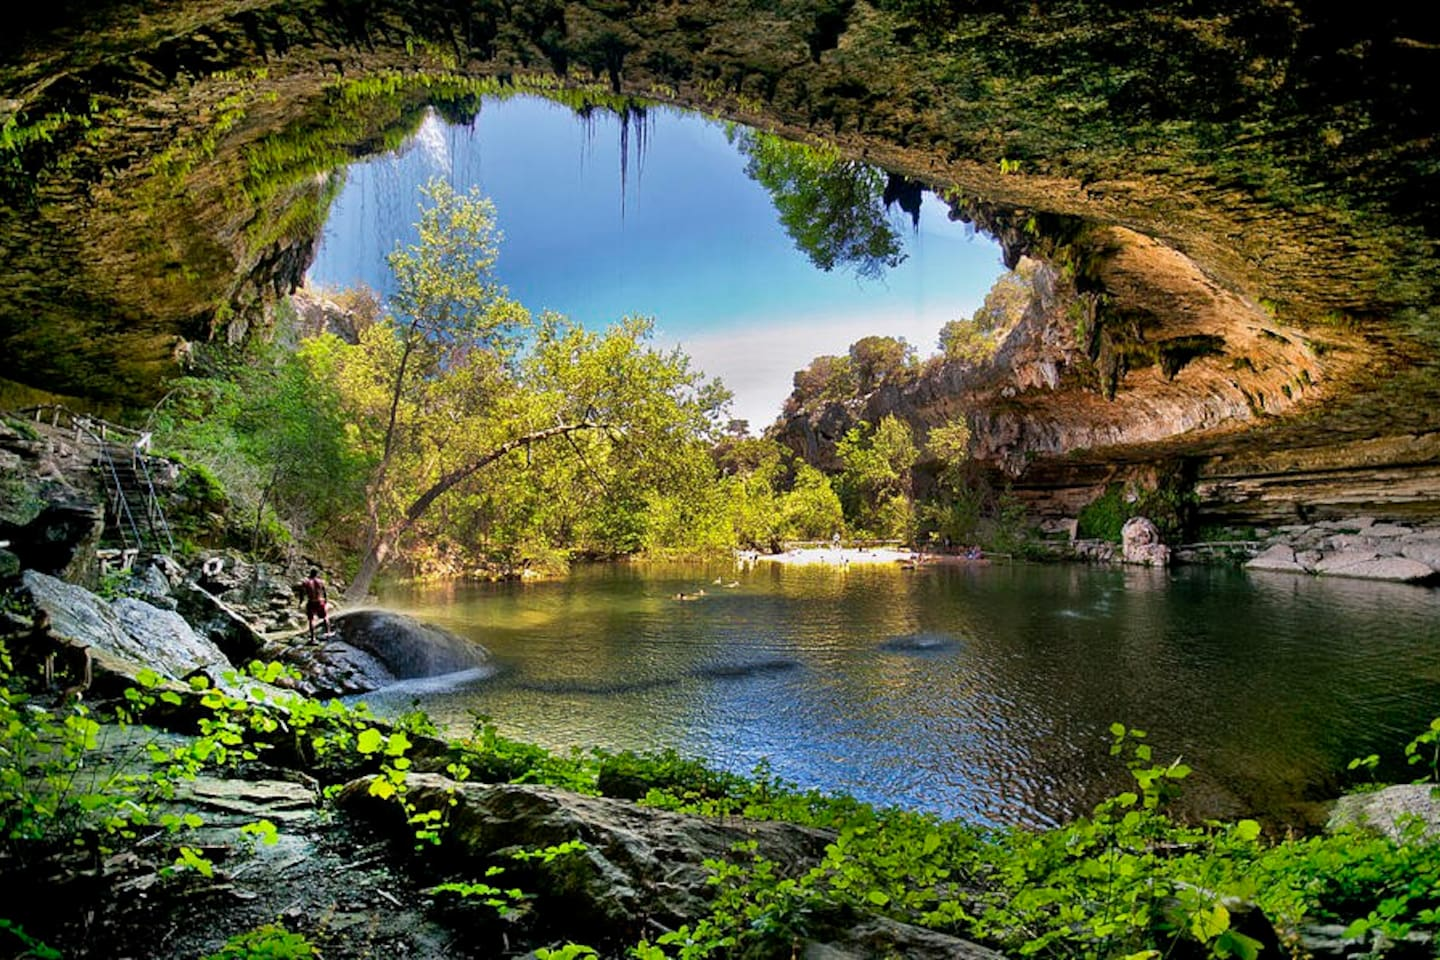 World famous Hamilton Pool, only 8 minutes away.